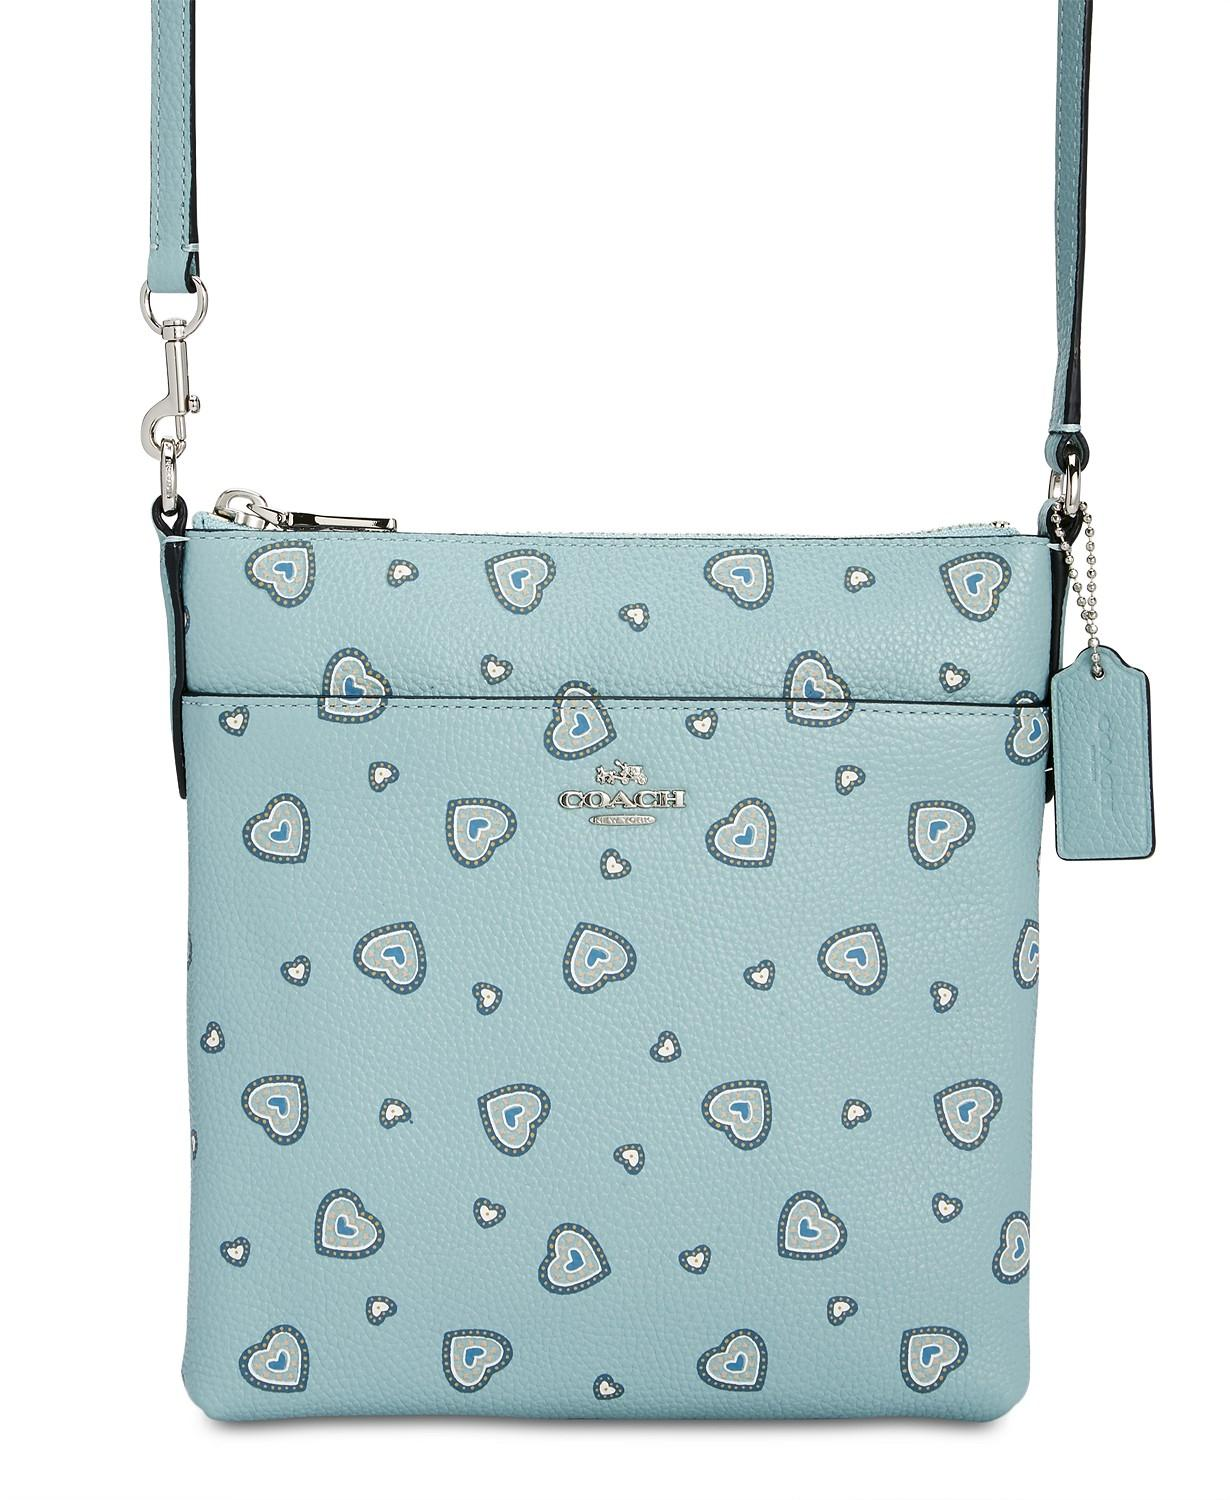 7c2d244e8 promo code for coach teal crossbody bag 4f02a 41df4